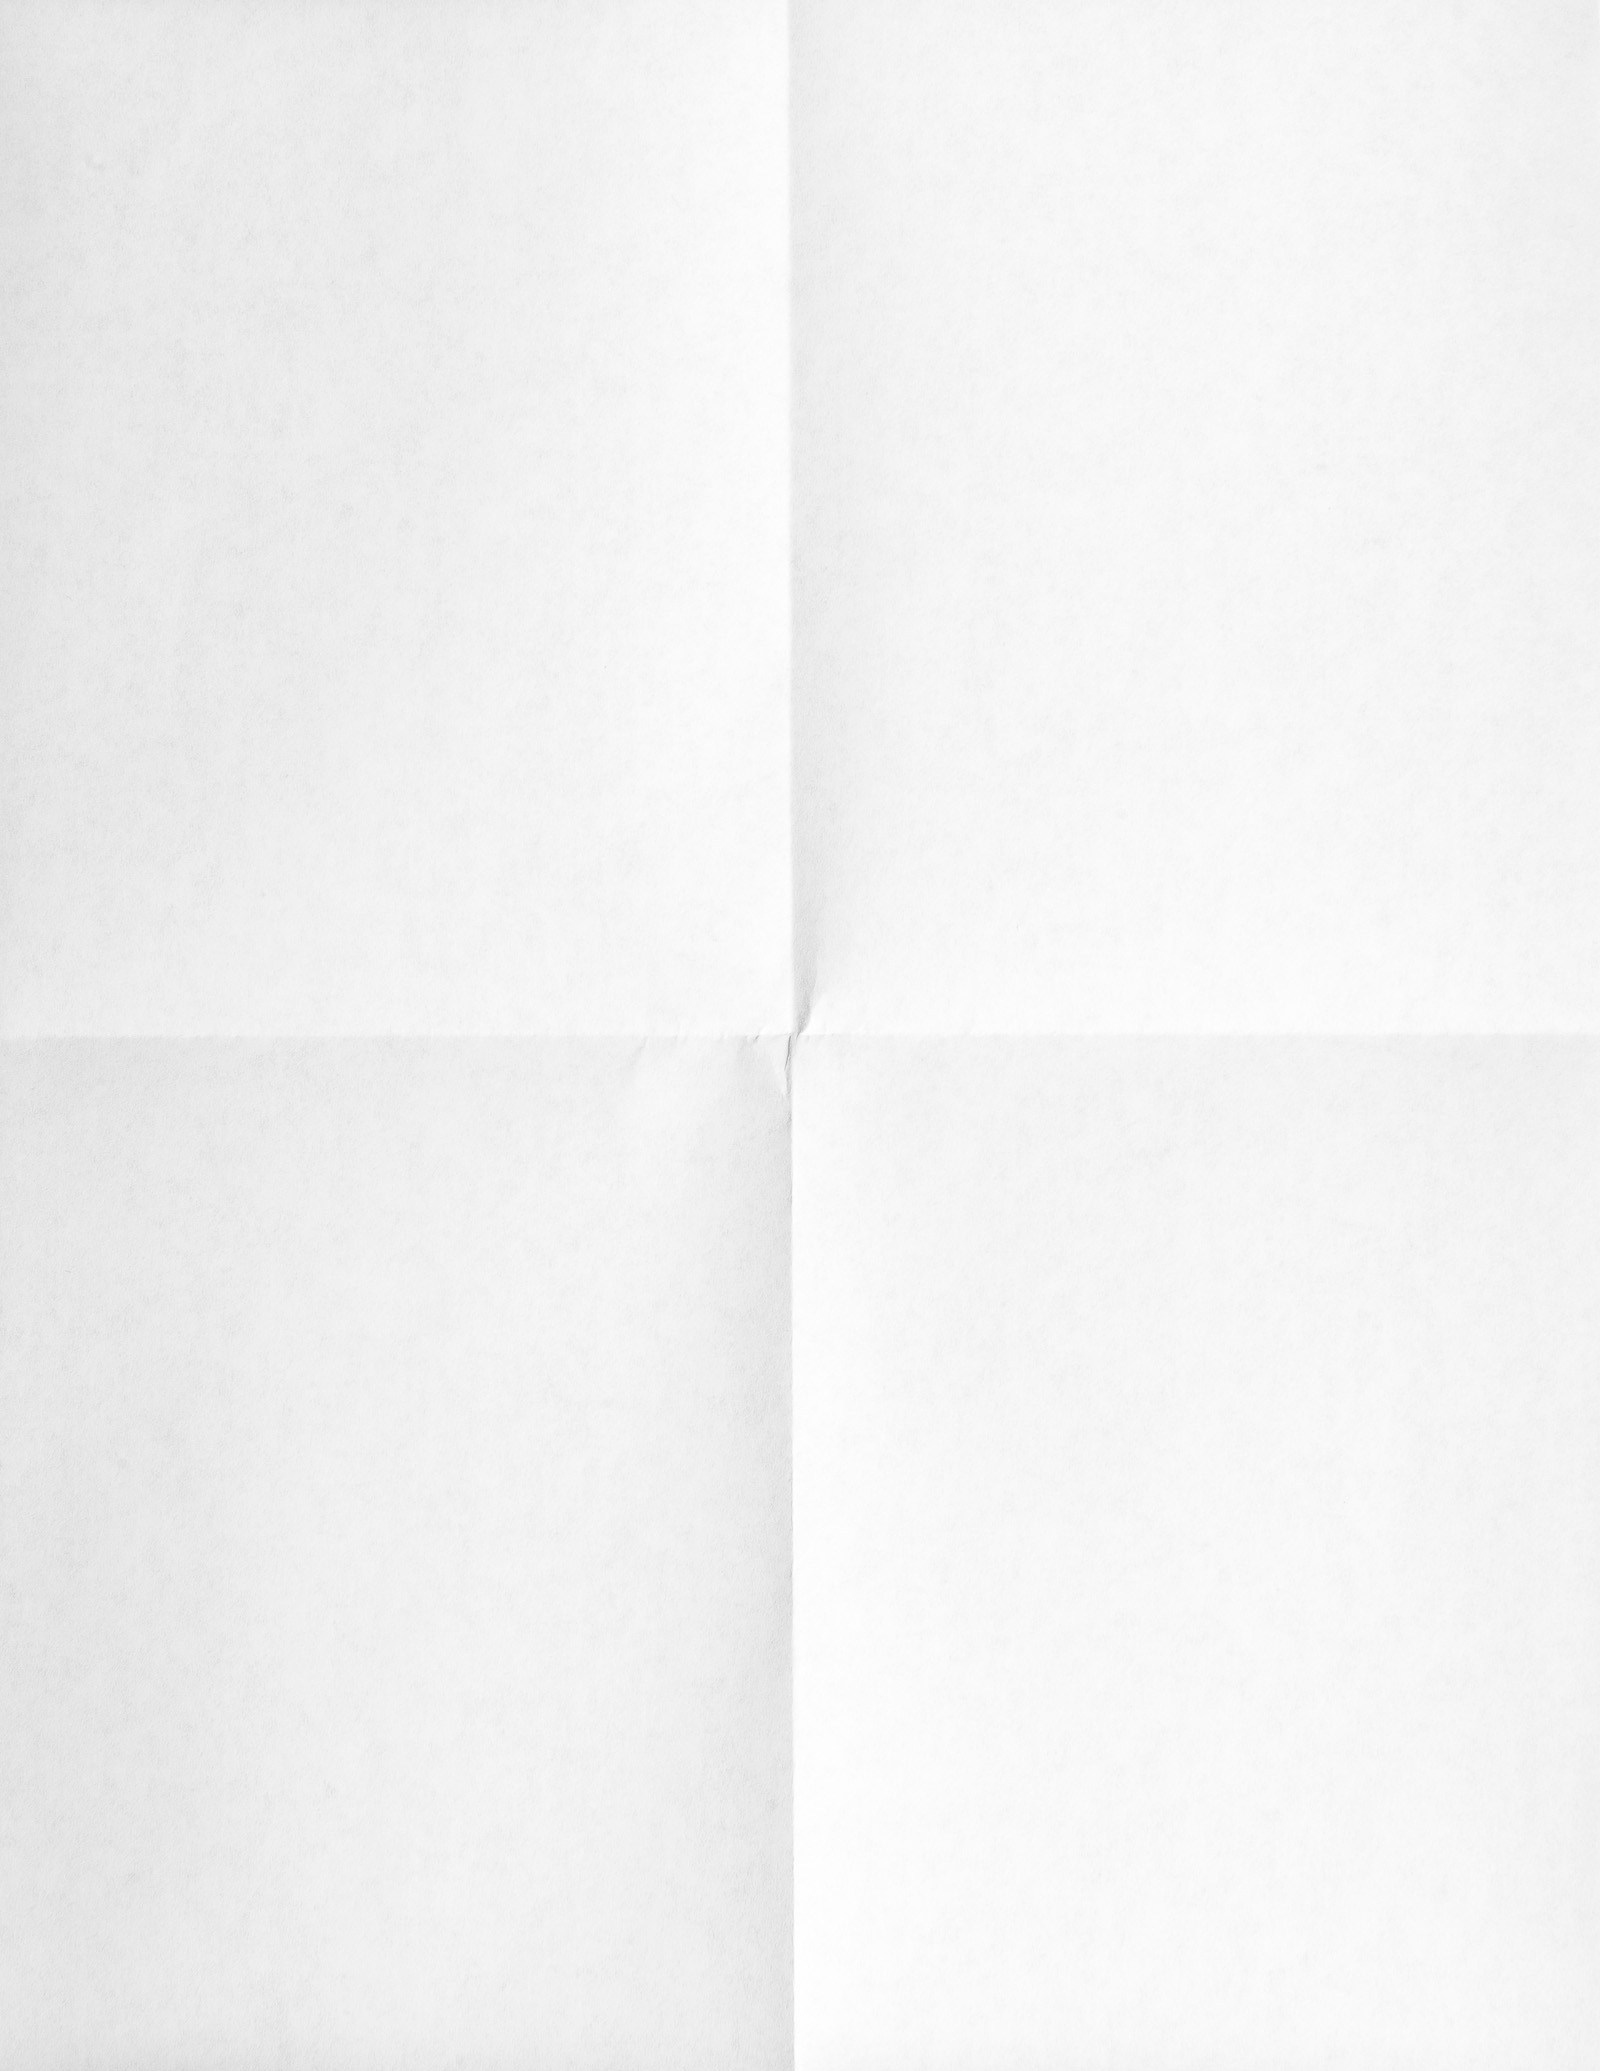 white left the crease paper textures 51751 - background patterns